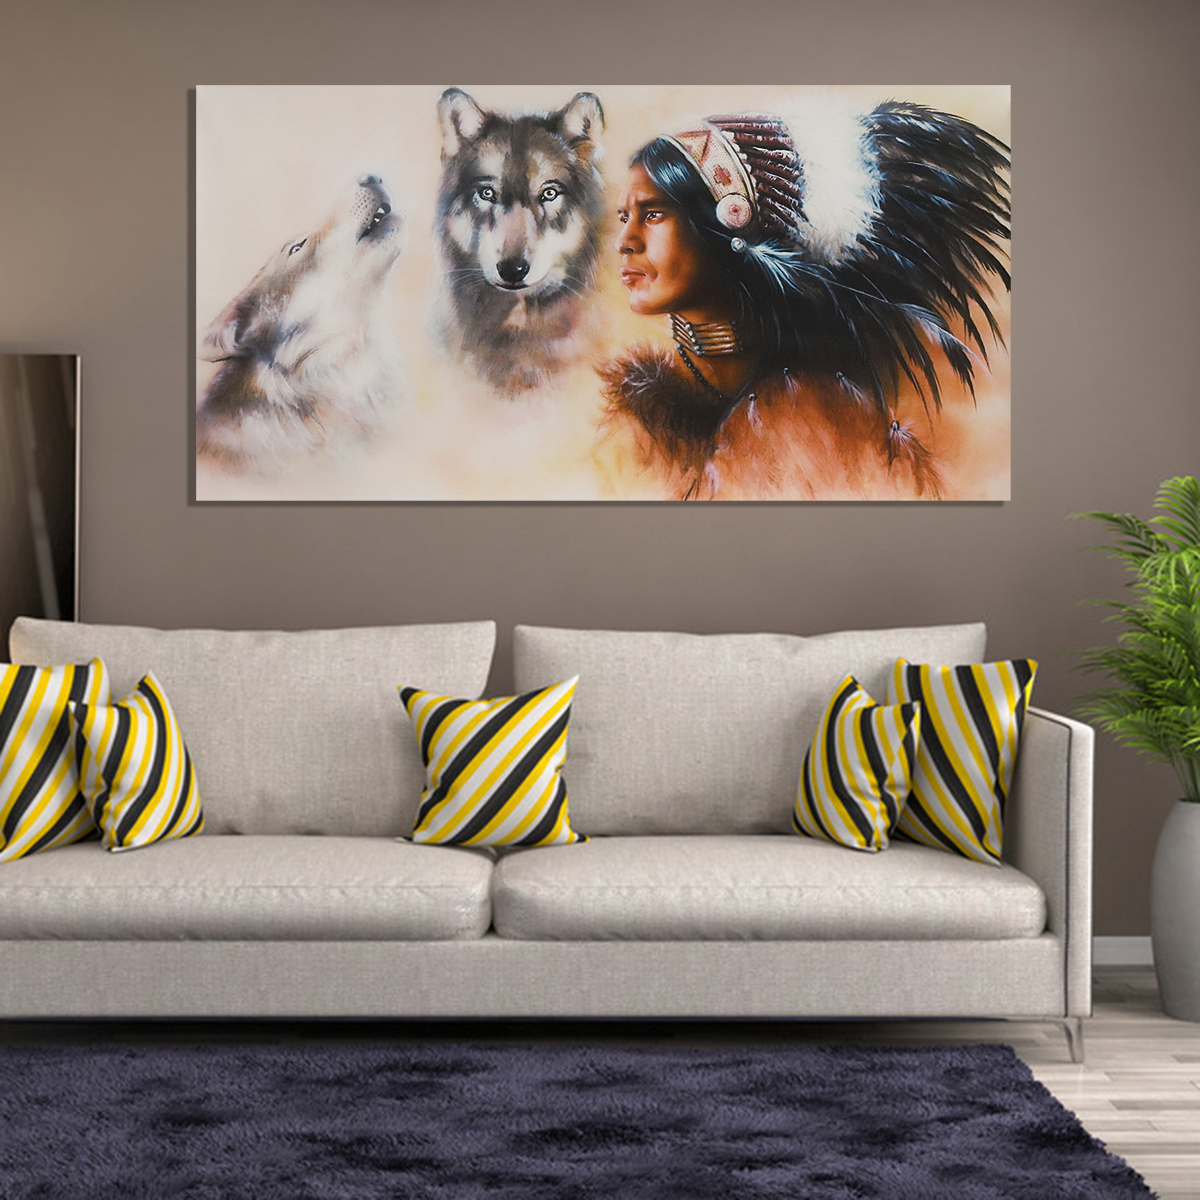 Indian Man Wolf Oil Painting Picture Canvas Prints Modern Shop Office Home Living Room Bedroom Wall Art Sticker Decor Without Frame 31 5 X 15 7